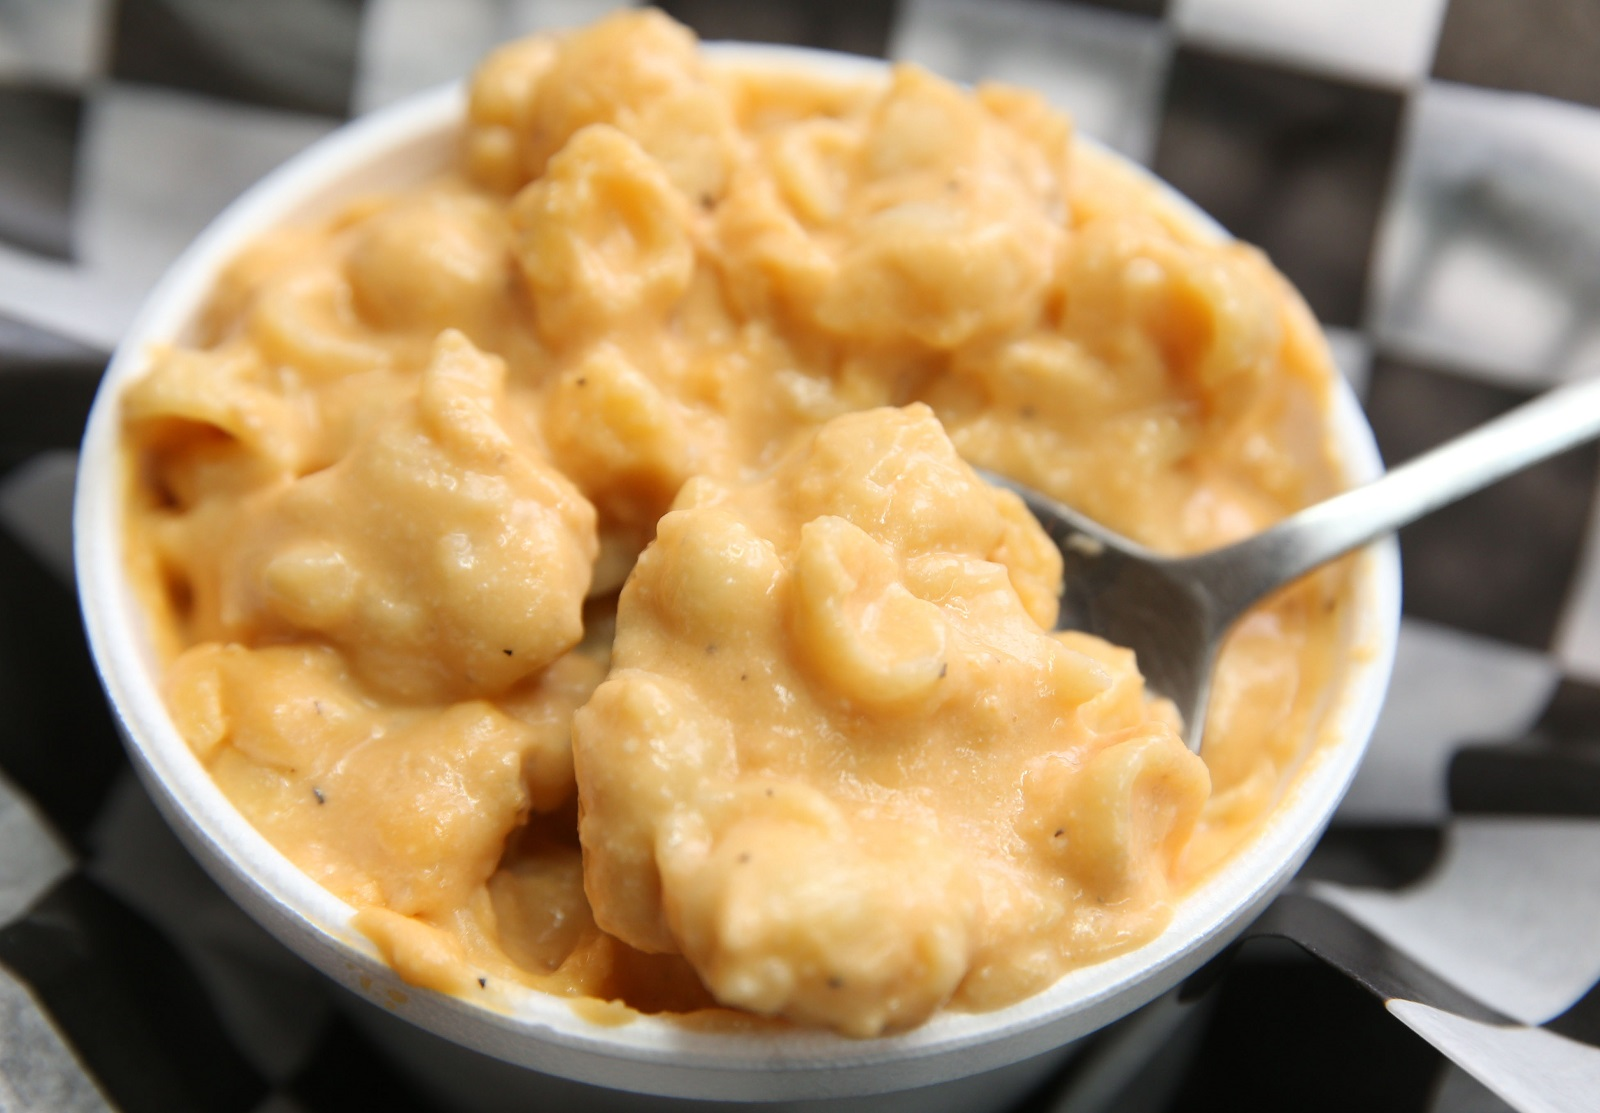 Mac and cheese is another side from R&R. (Sharon Cantillon/Buffalo News)